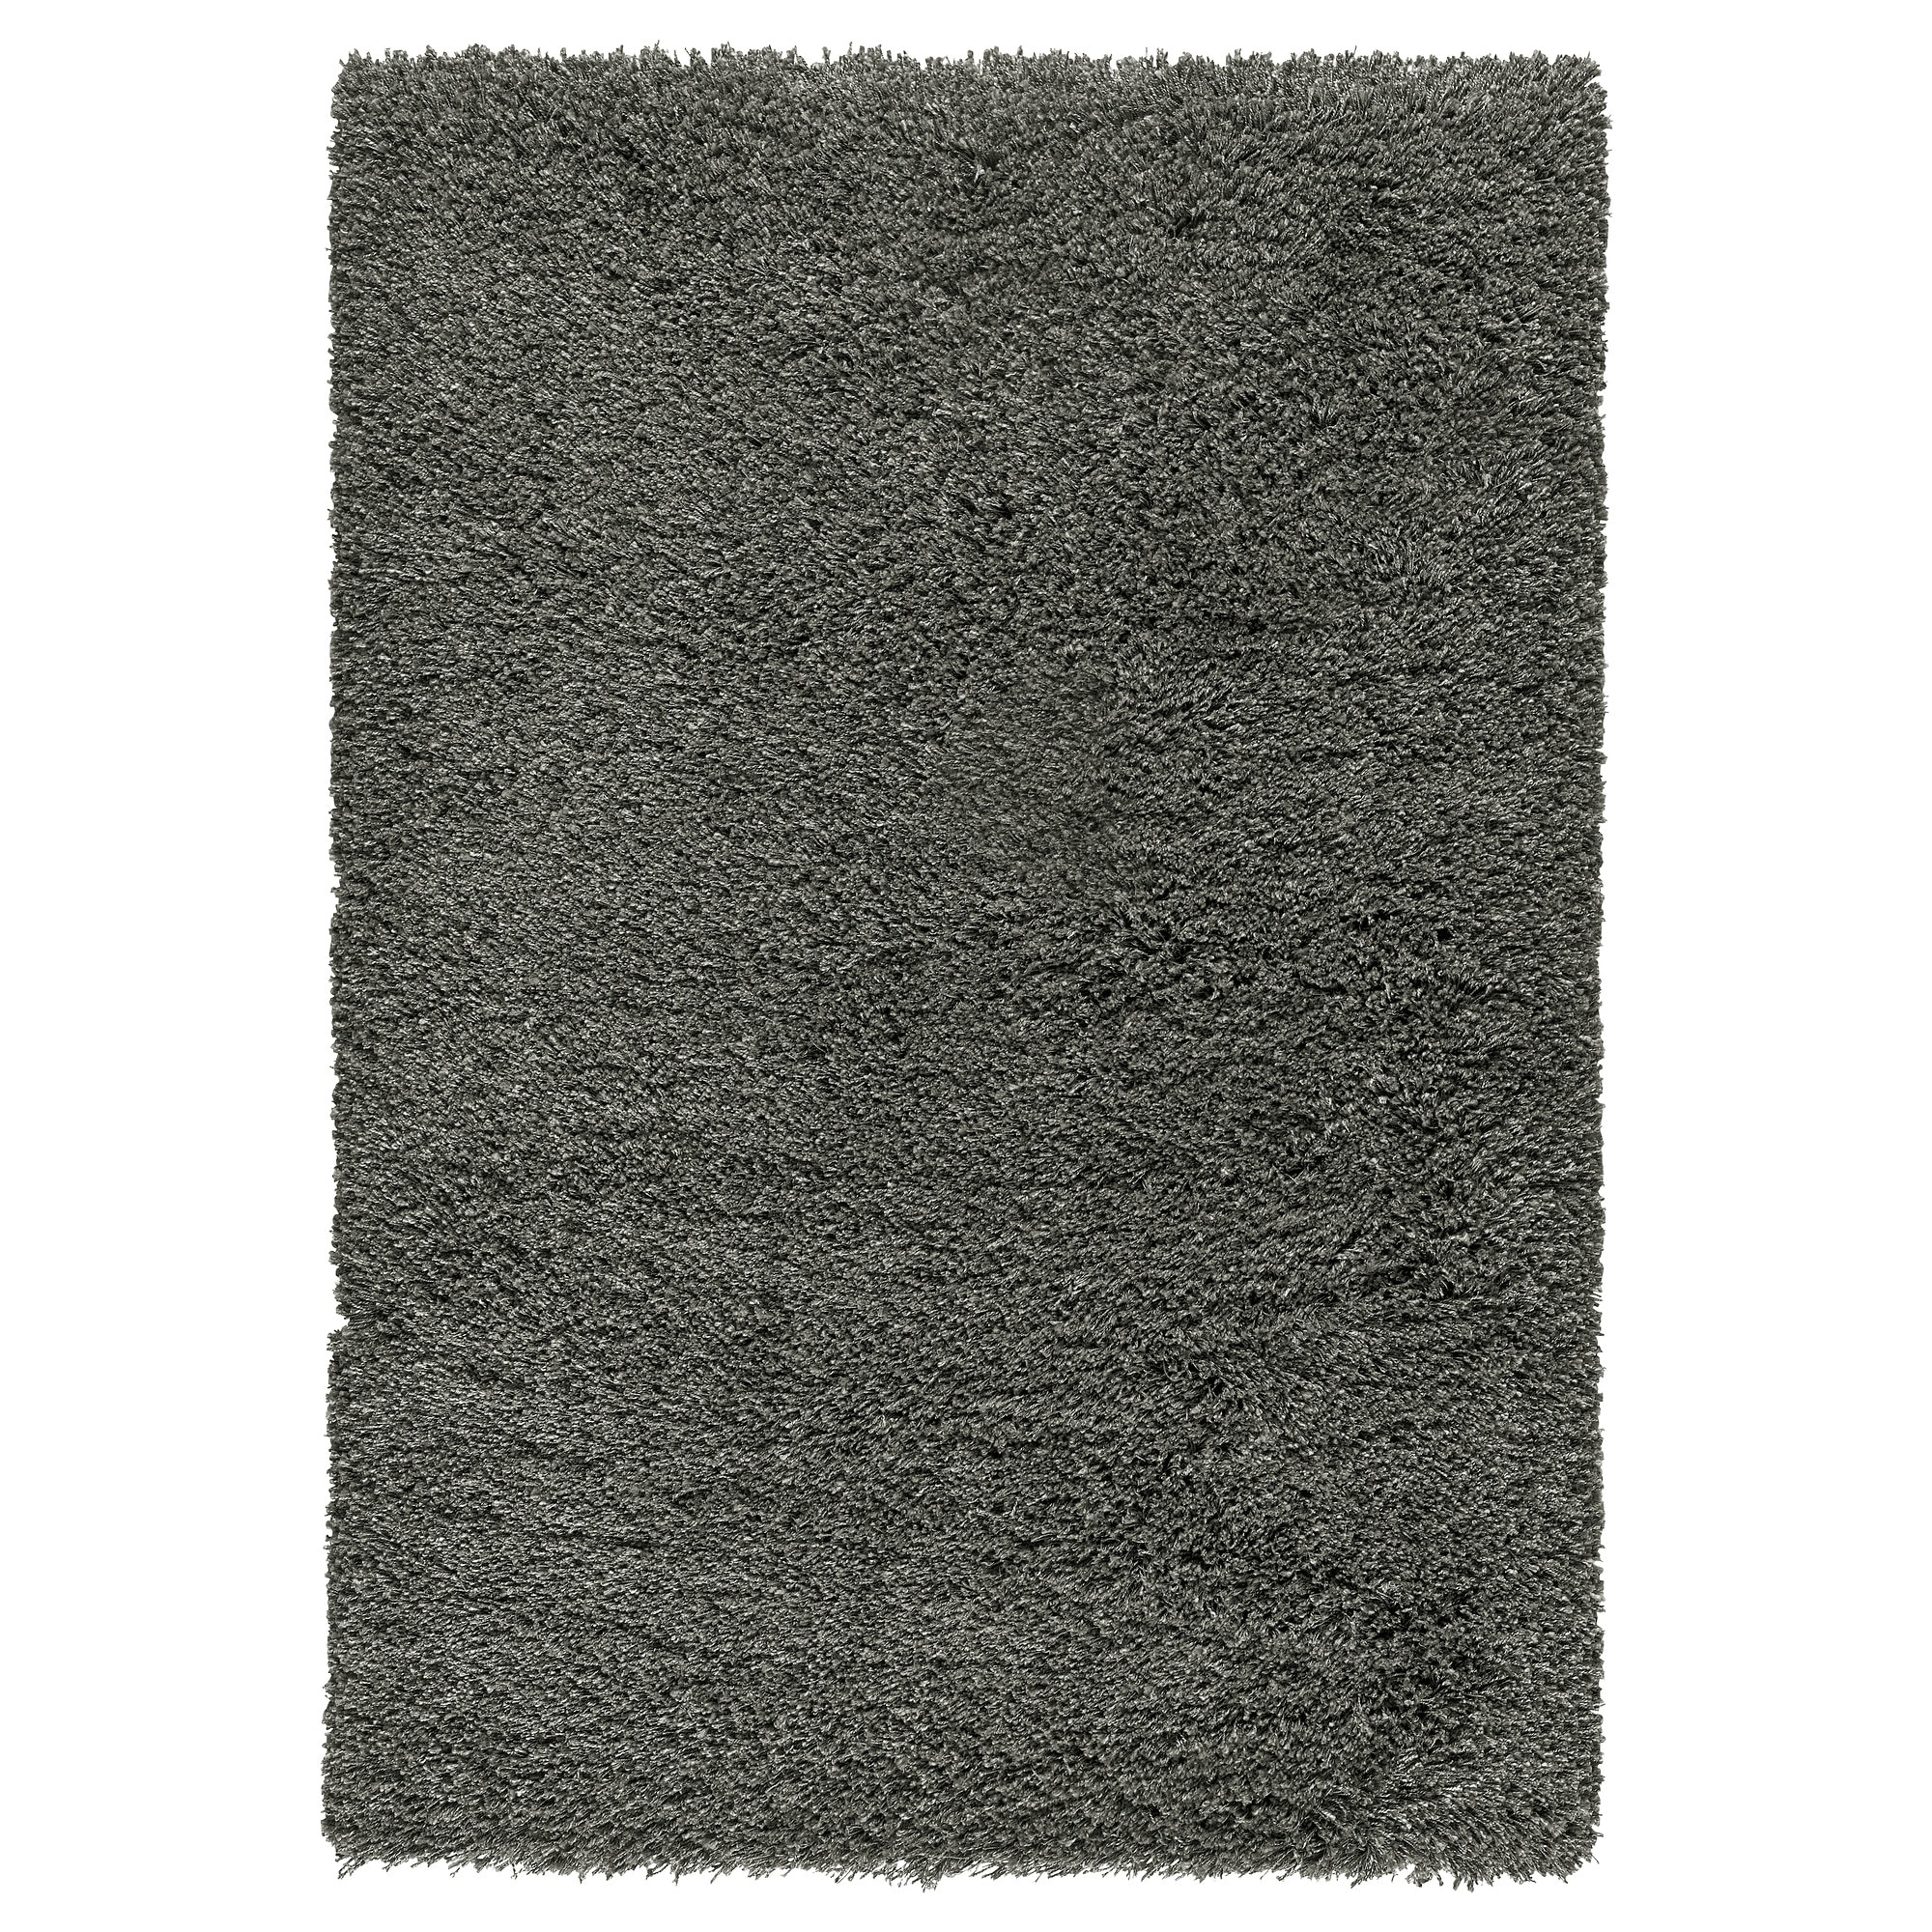 GÅSER rug, high pile, dark gray Length: 7 u0027 10